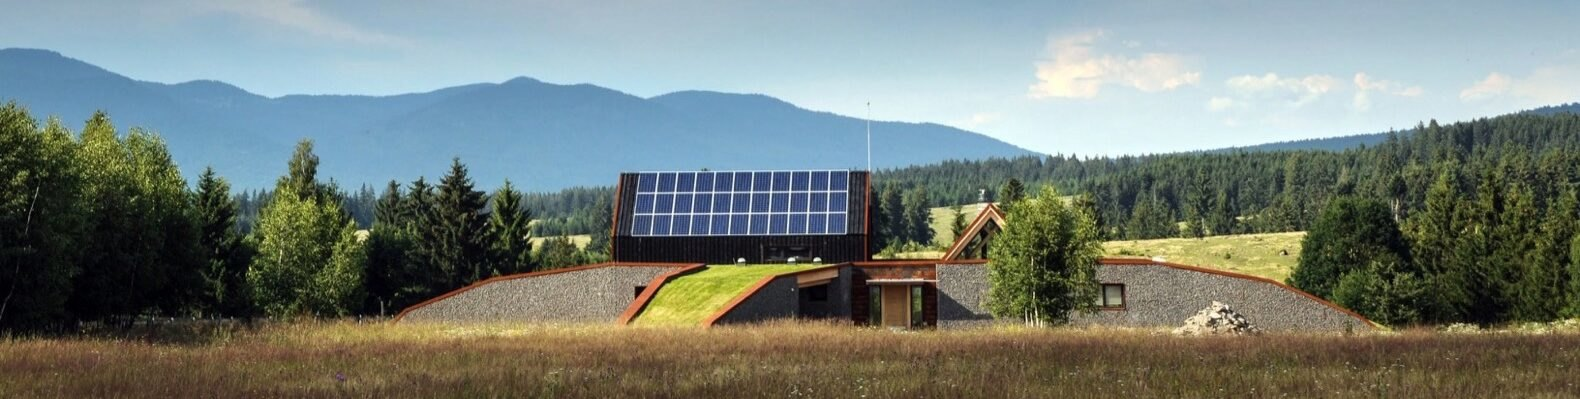 a far view of the entire house. a field is in front of the building. a lane of bright green lawn leads up to a structure covered in solar panels. to the right is a textured gray semi-cricle structure. in the background are mountains and trees